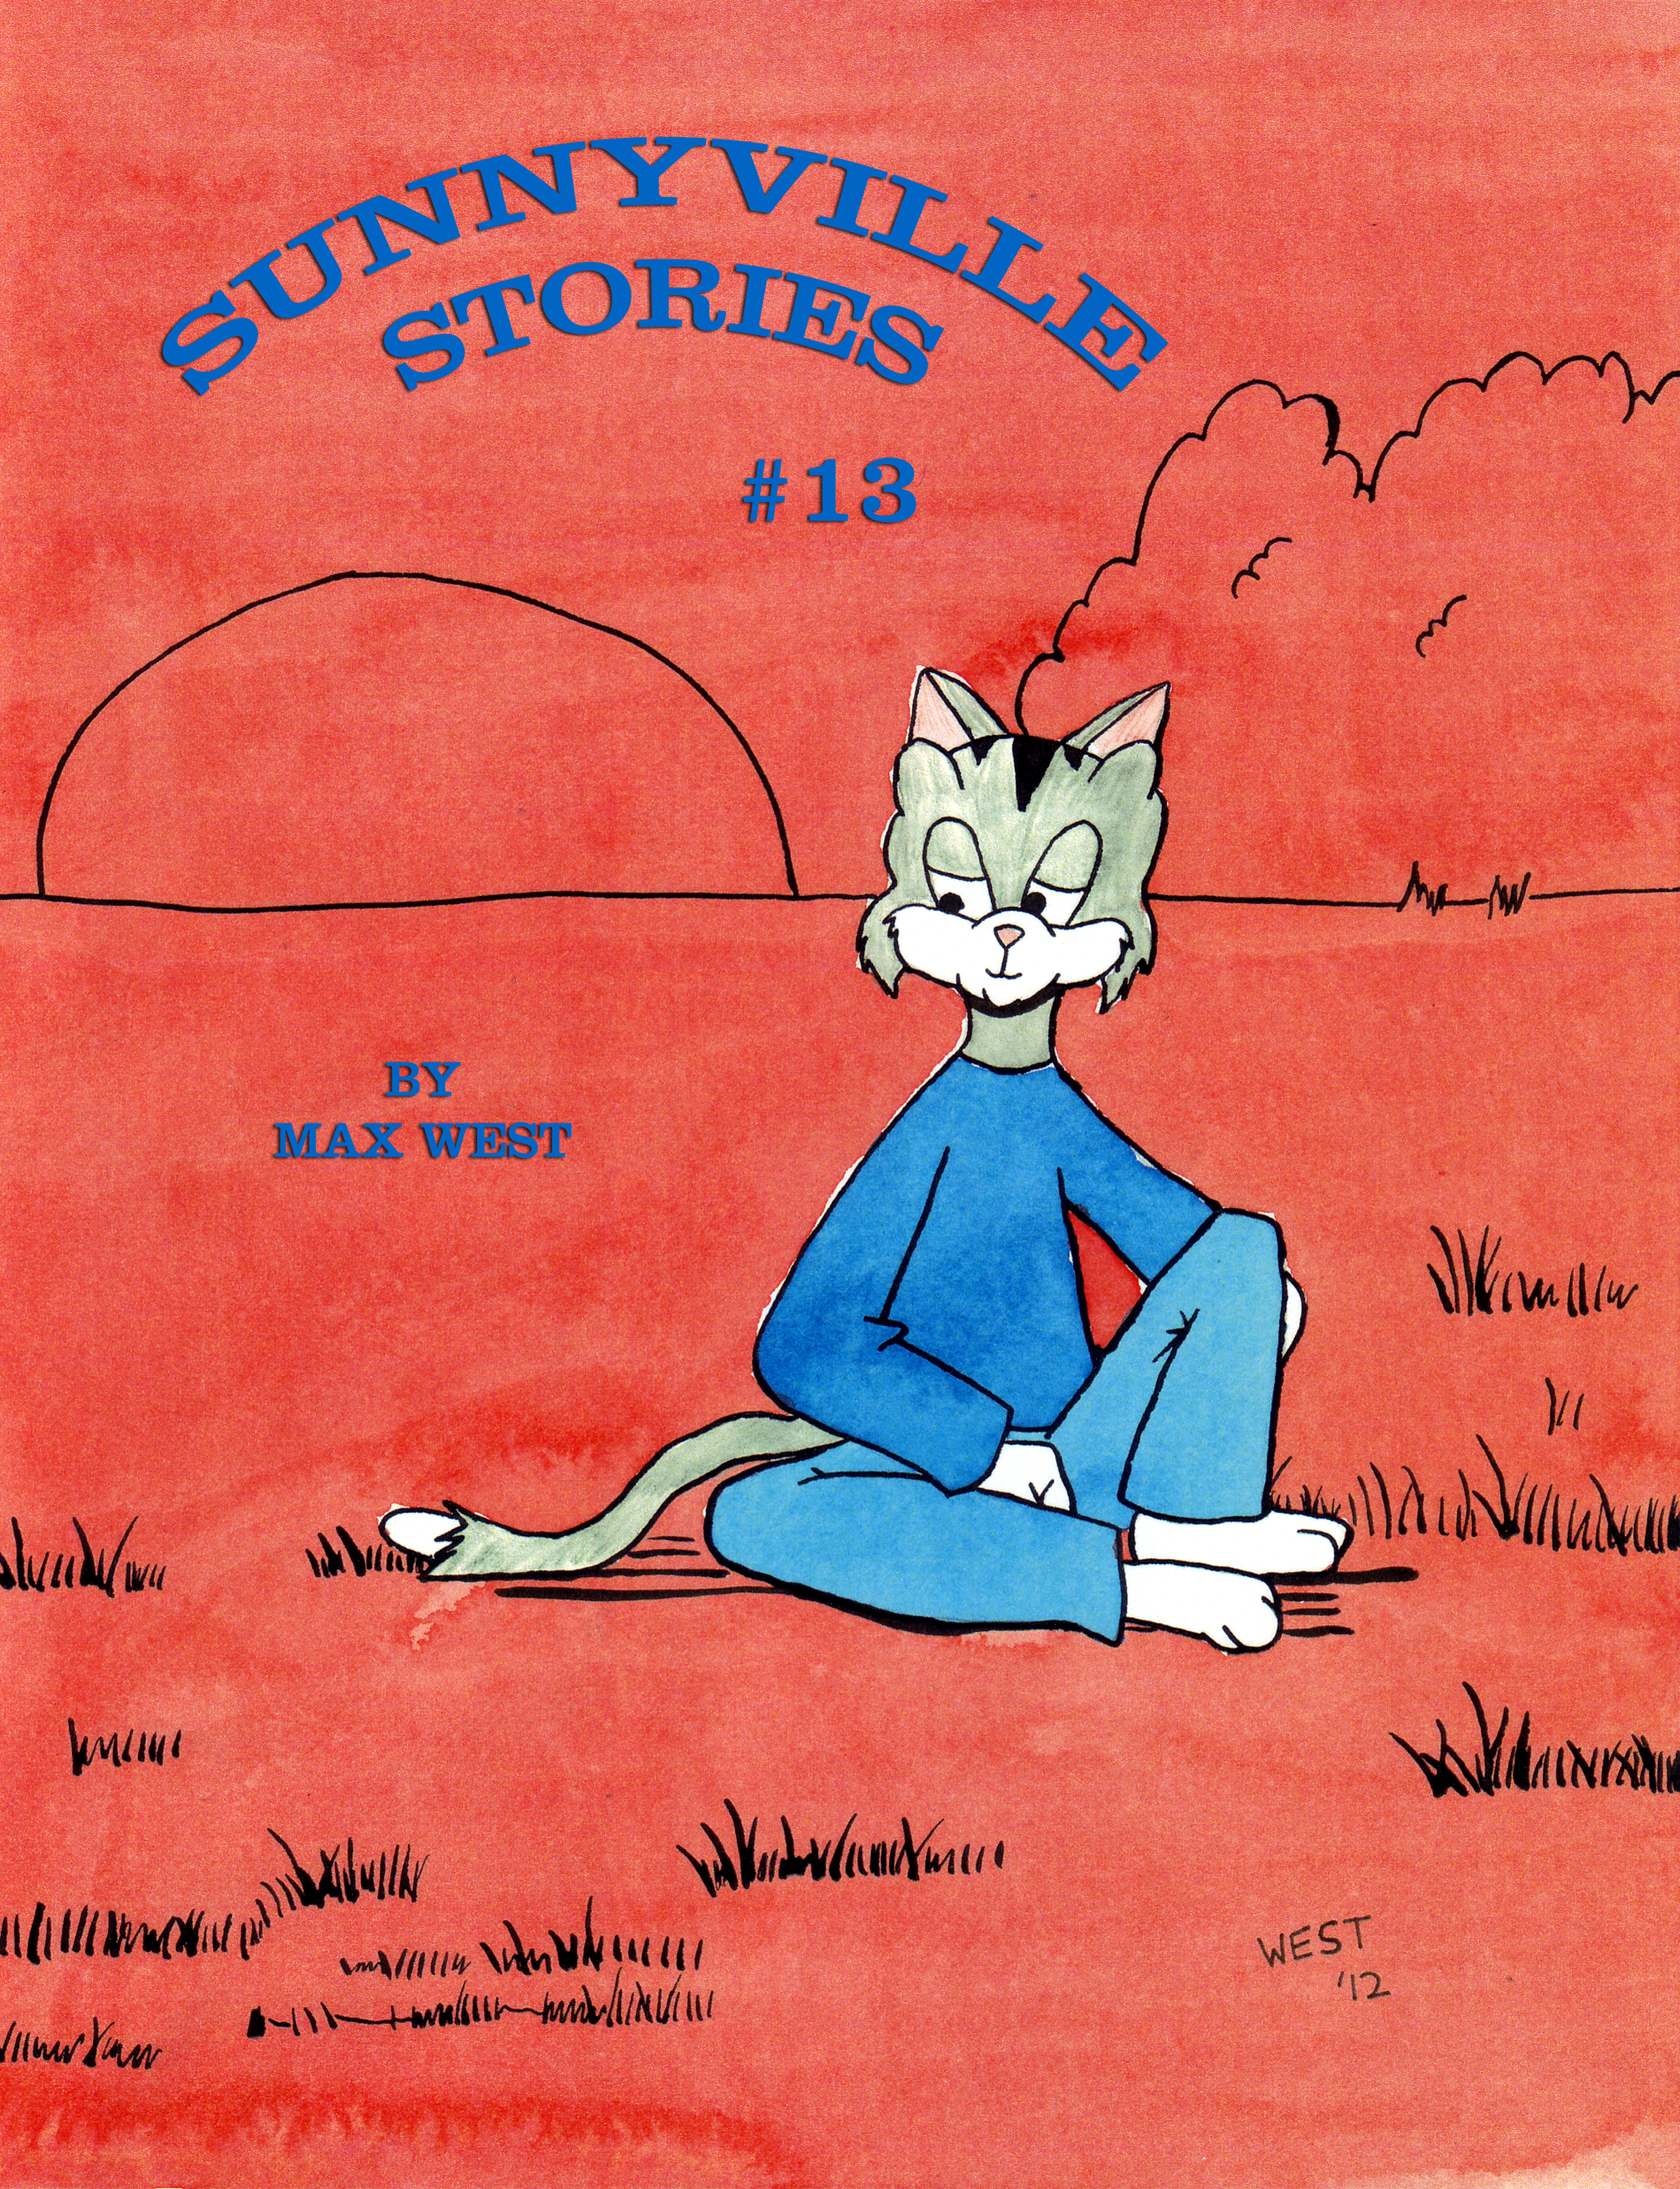 Sunnyville Stories #13 Cover